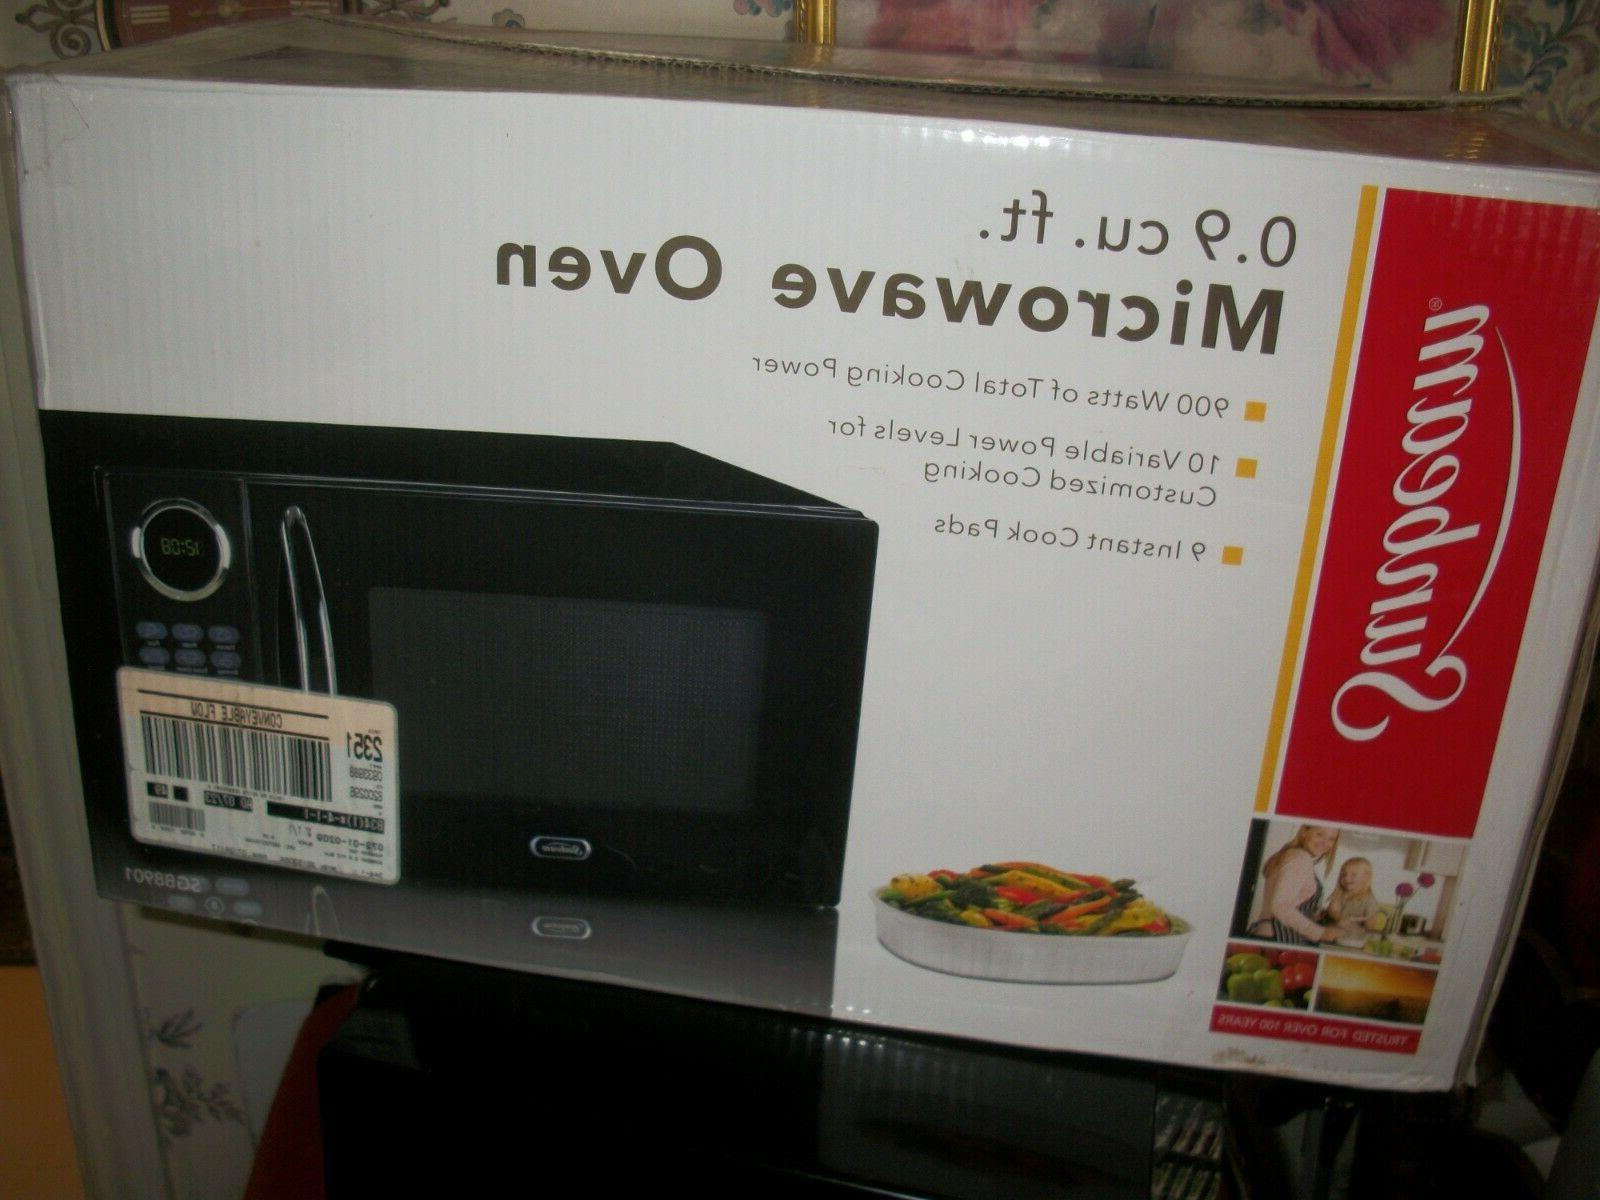 Sunbeam Microwave Oven Watts 0.9 Cubic Feet